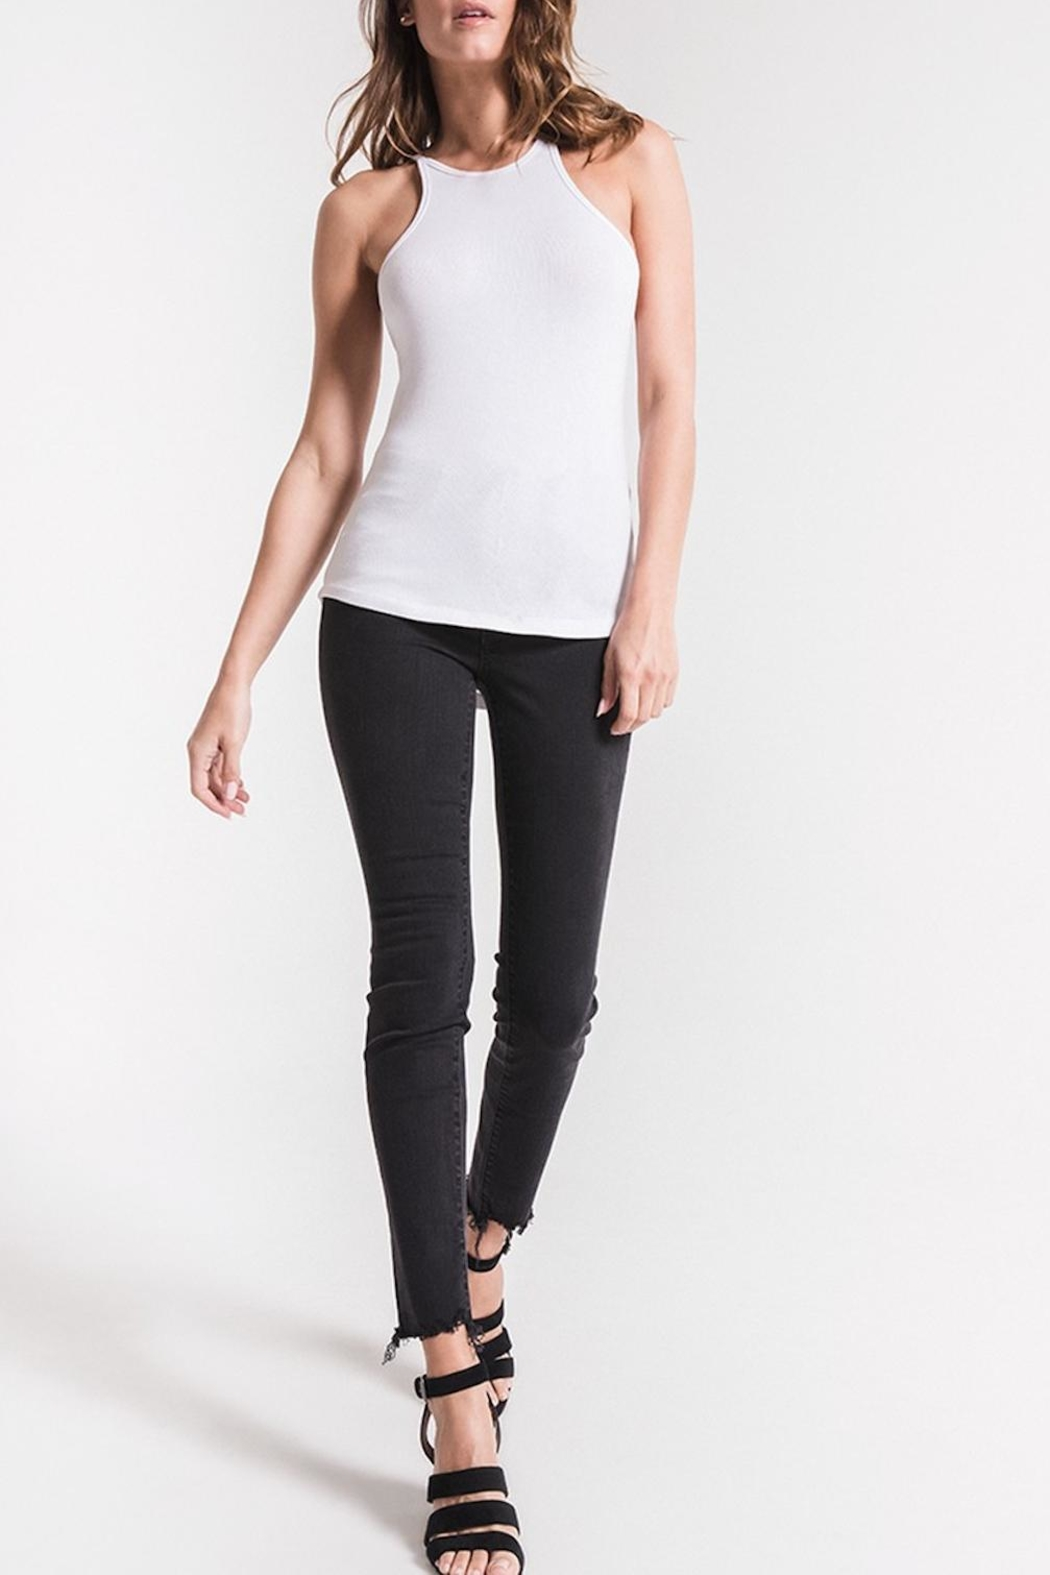 z supply High Neck Tank - Main Image